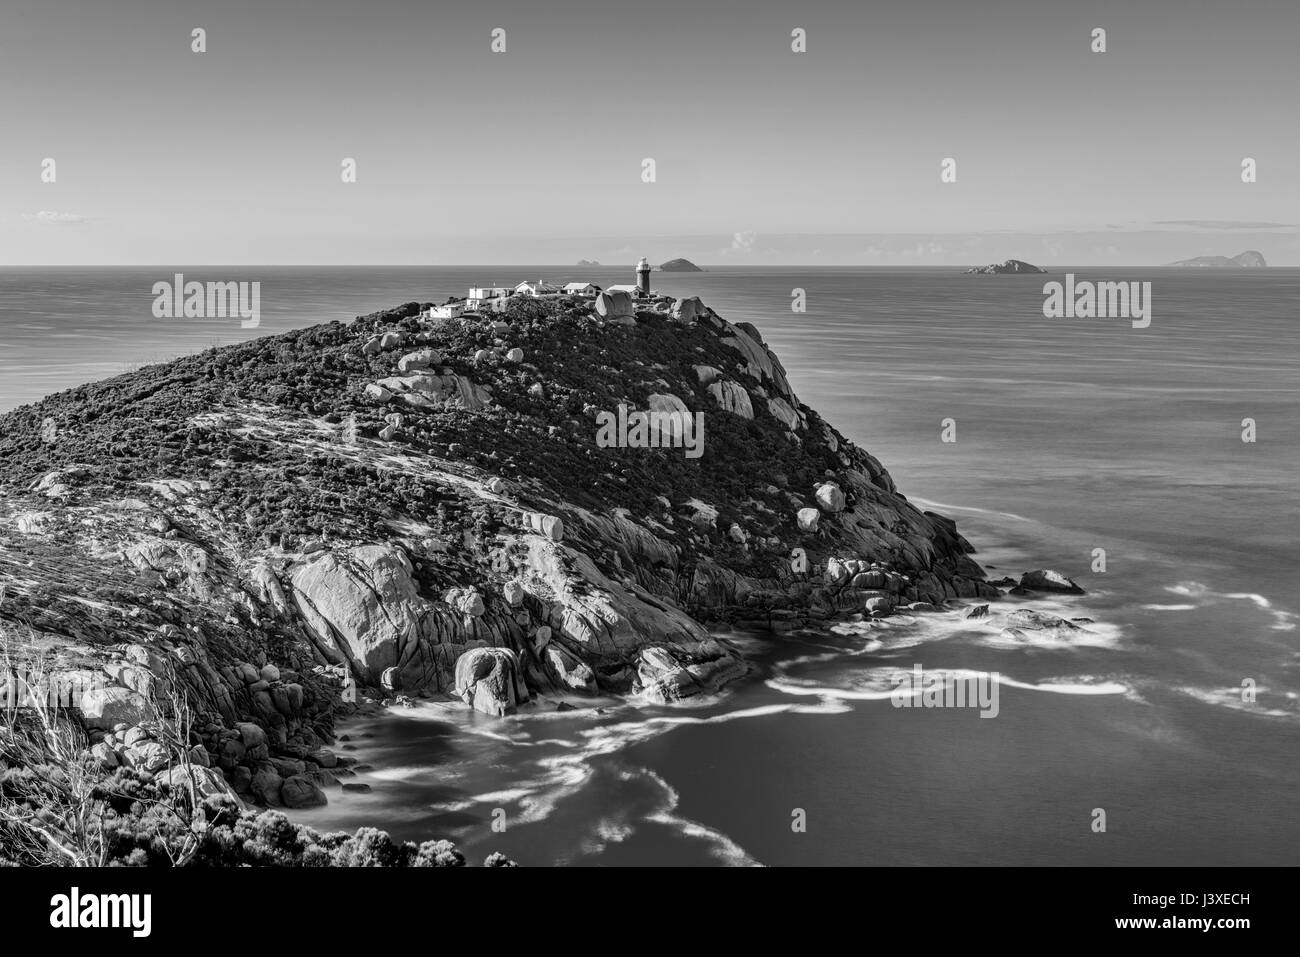 The lighthouse at Wilsons Prom during the early hours, in black and white. - Stock Image